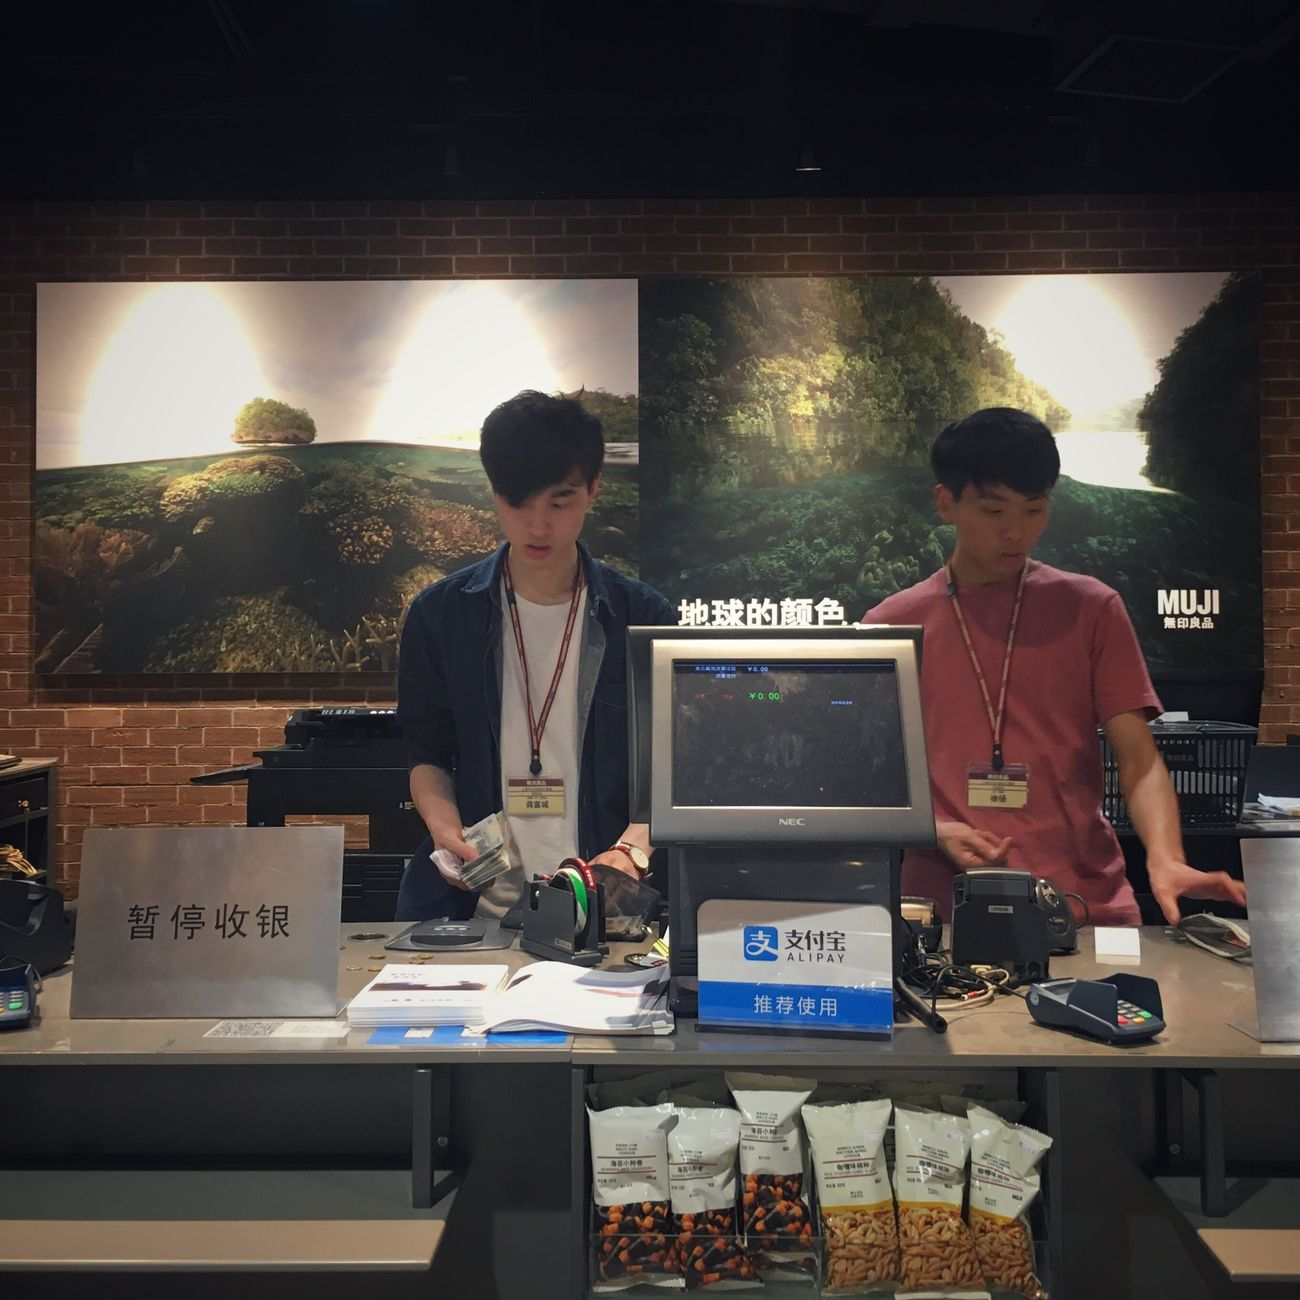 Muji Two People Technology Real People Indoors  Standing Checkout Front View Communication Cash Register Occupation Business Working Men Businessman Day Young Women People